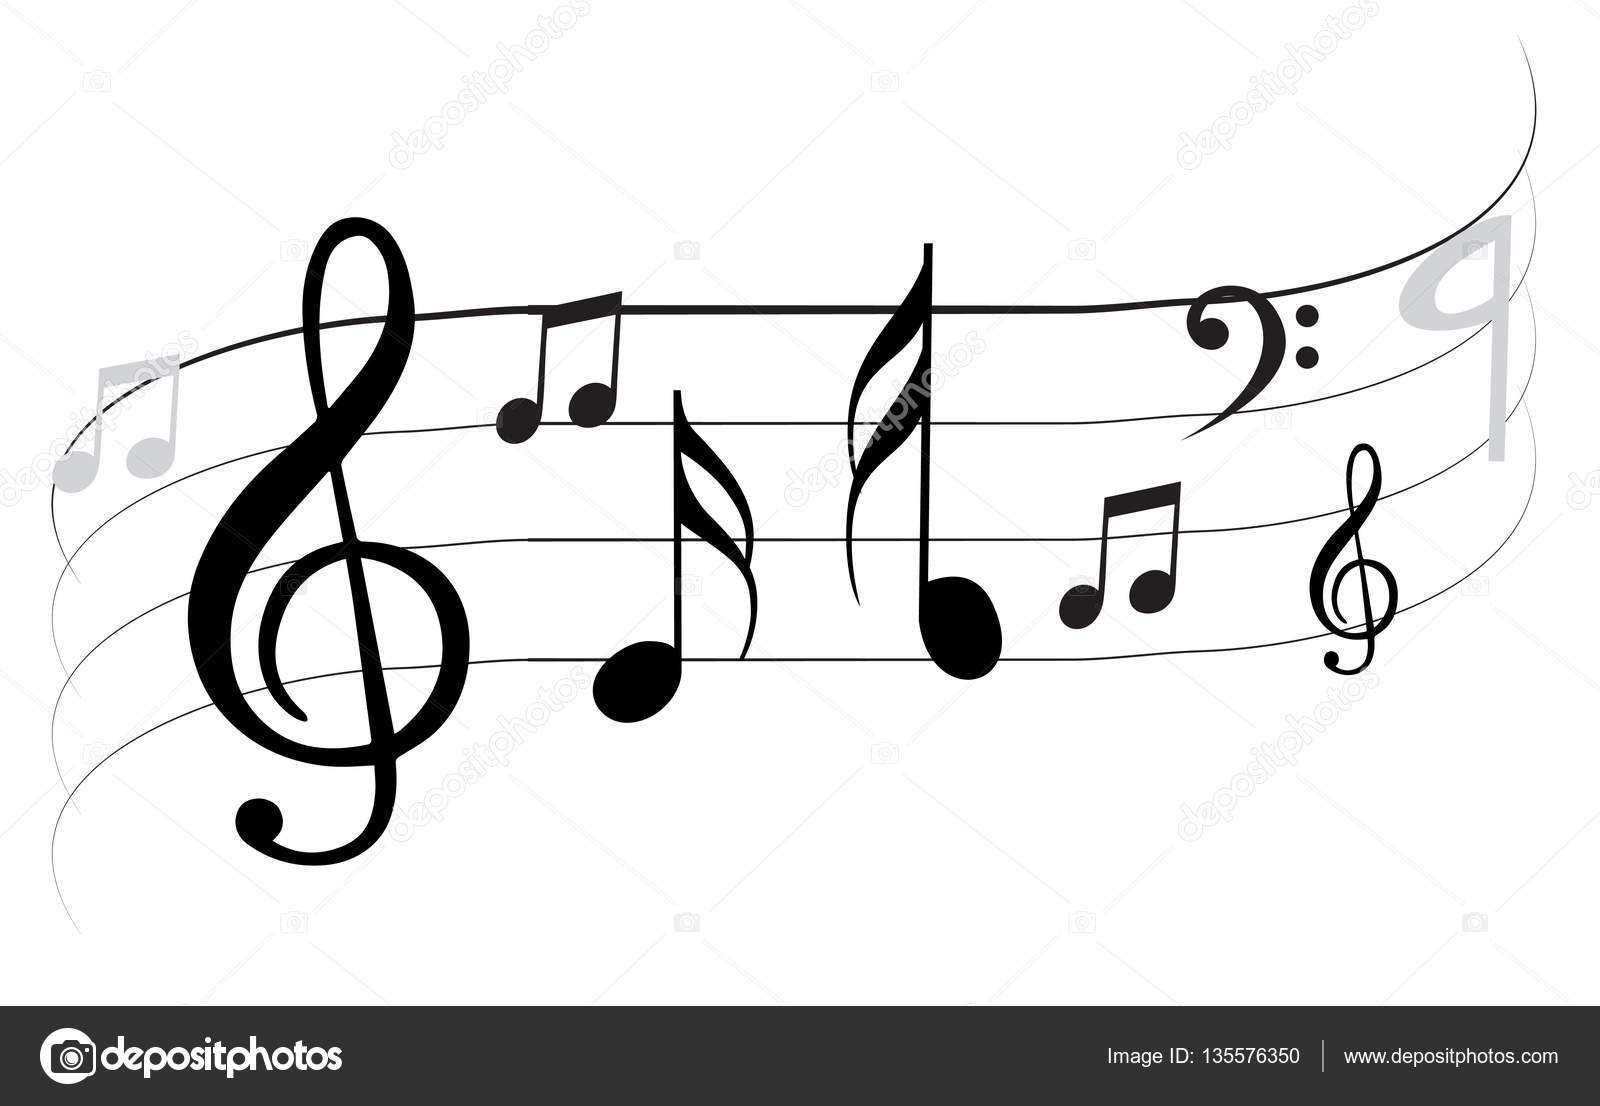 Music Note Design Stock Vector C Lahiruudara 135576350